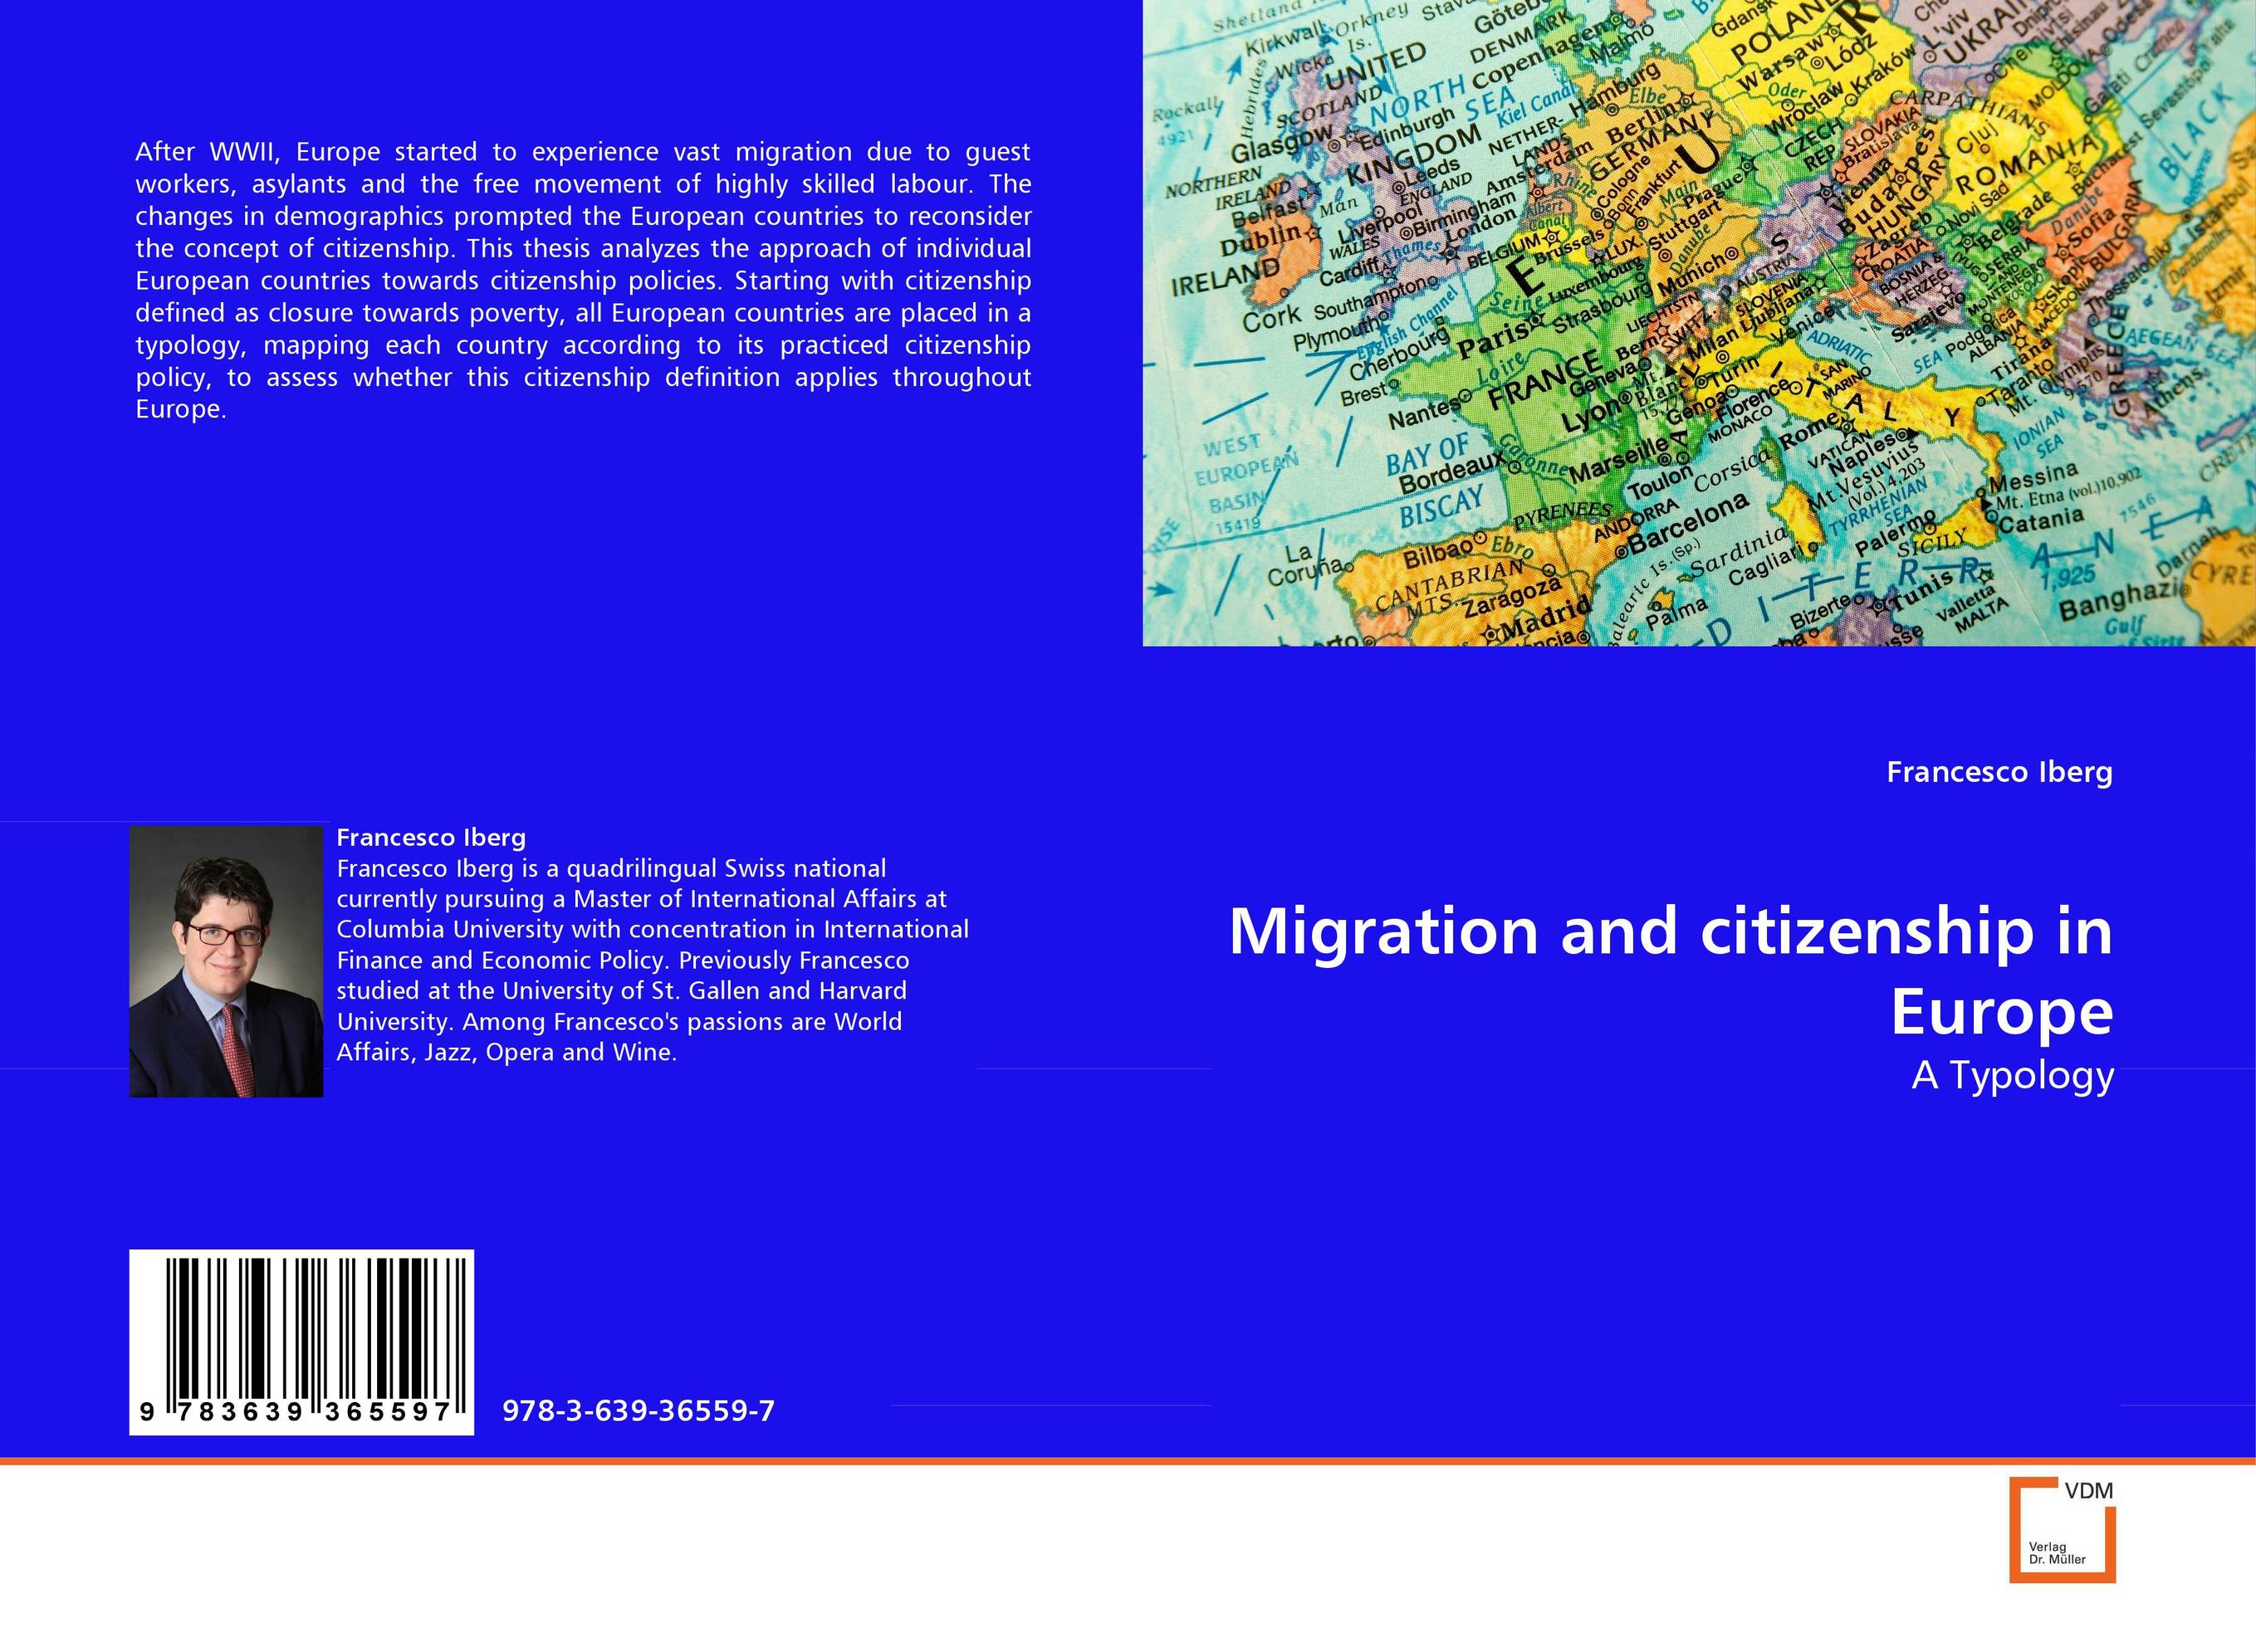 Migration and citizenship in Europe